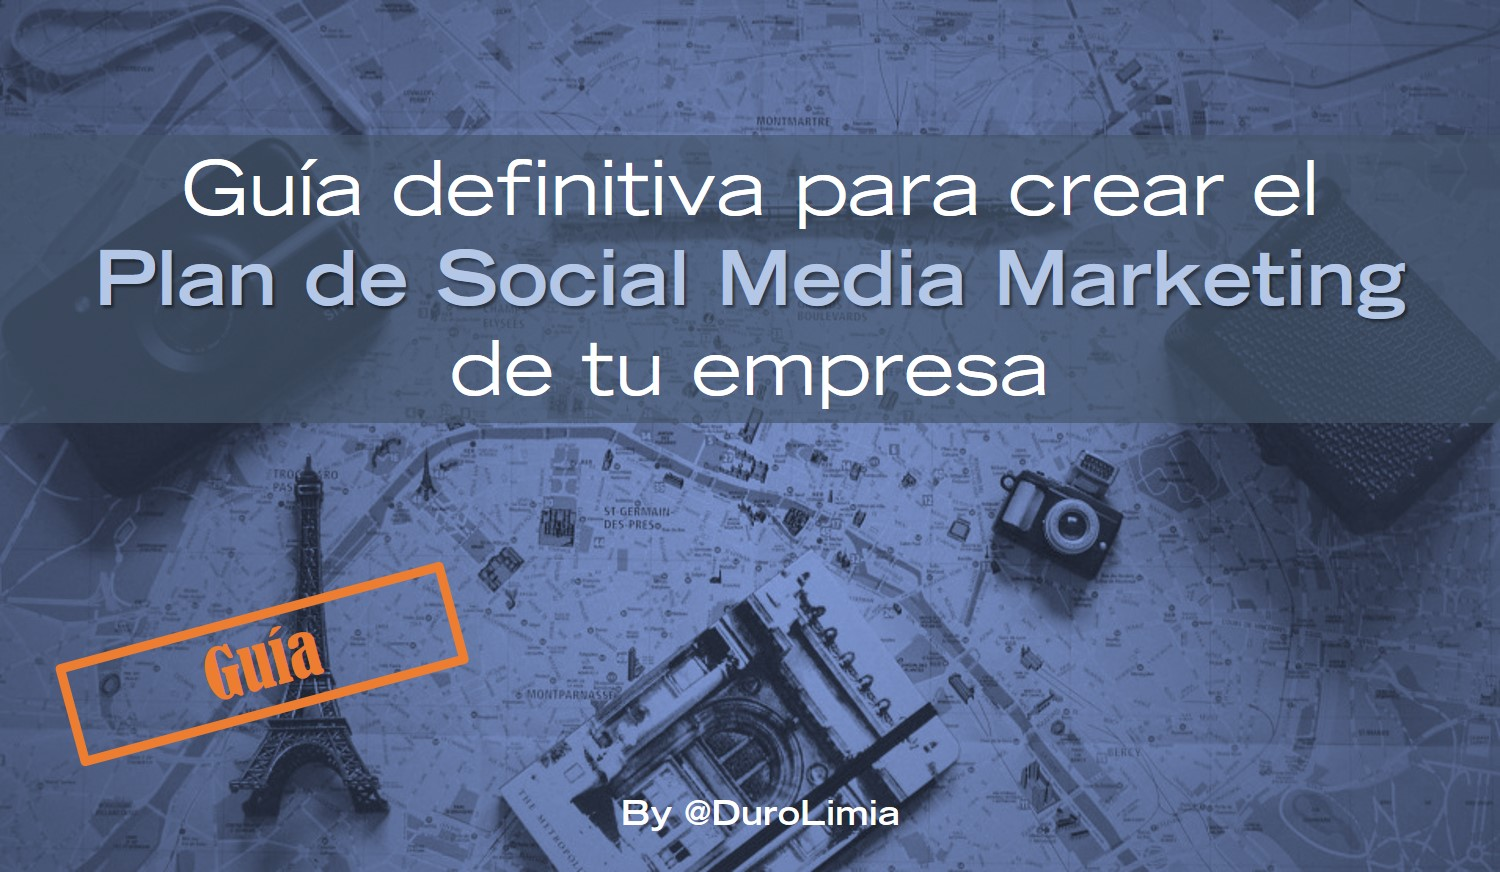 Plan Social Media Marketing por Sonia Duro Limia